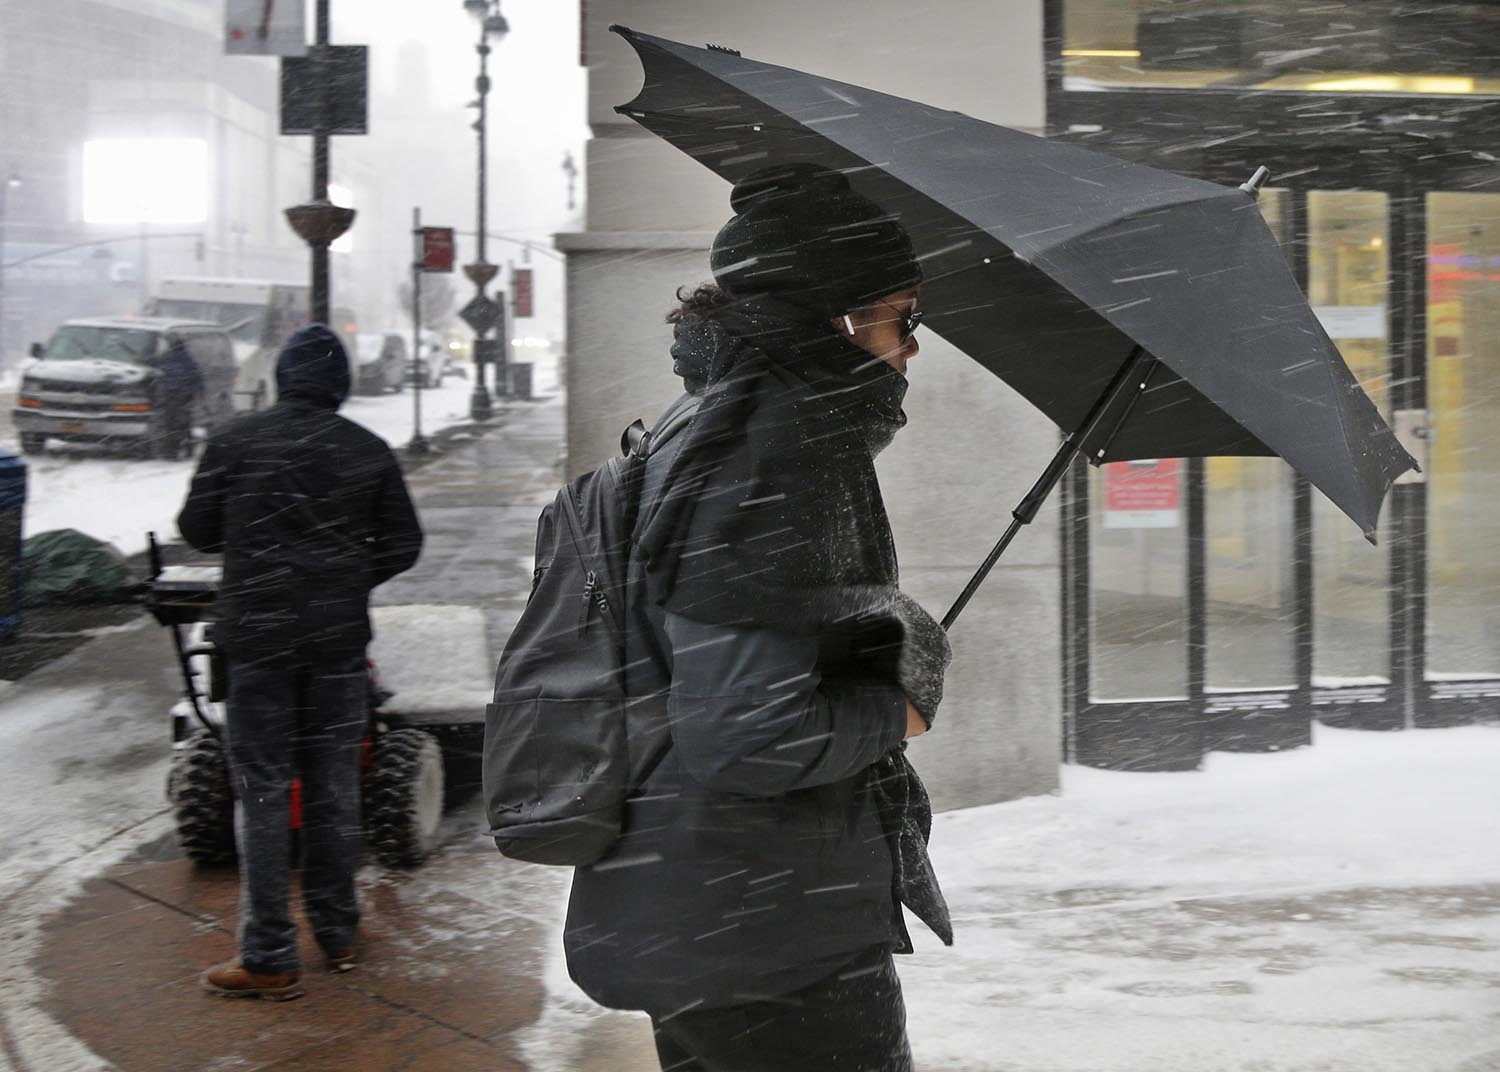 "<div class=""meta image-caption""><div class=""origin-logo origin-image ap""><span>AP</span></div><span class=""caption-text"">A pedestrian uses an umbrella as a shield from the windblown snow in New York, Thursday, Jan. 4, 2018. (AP Photo/Seth Wenig)</span></div>"